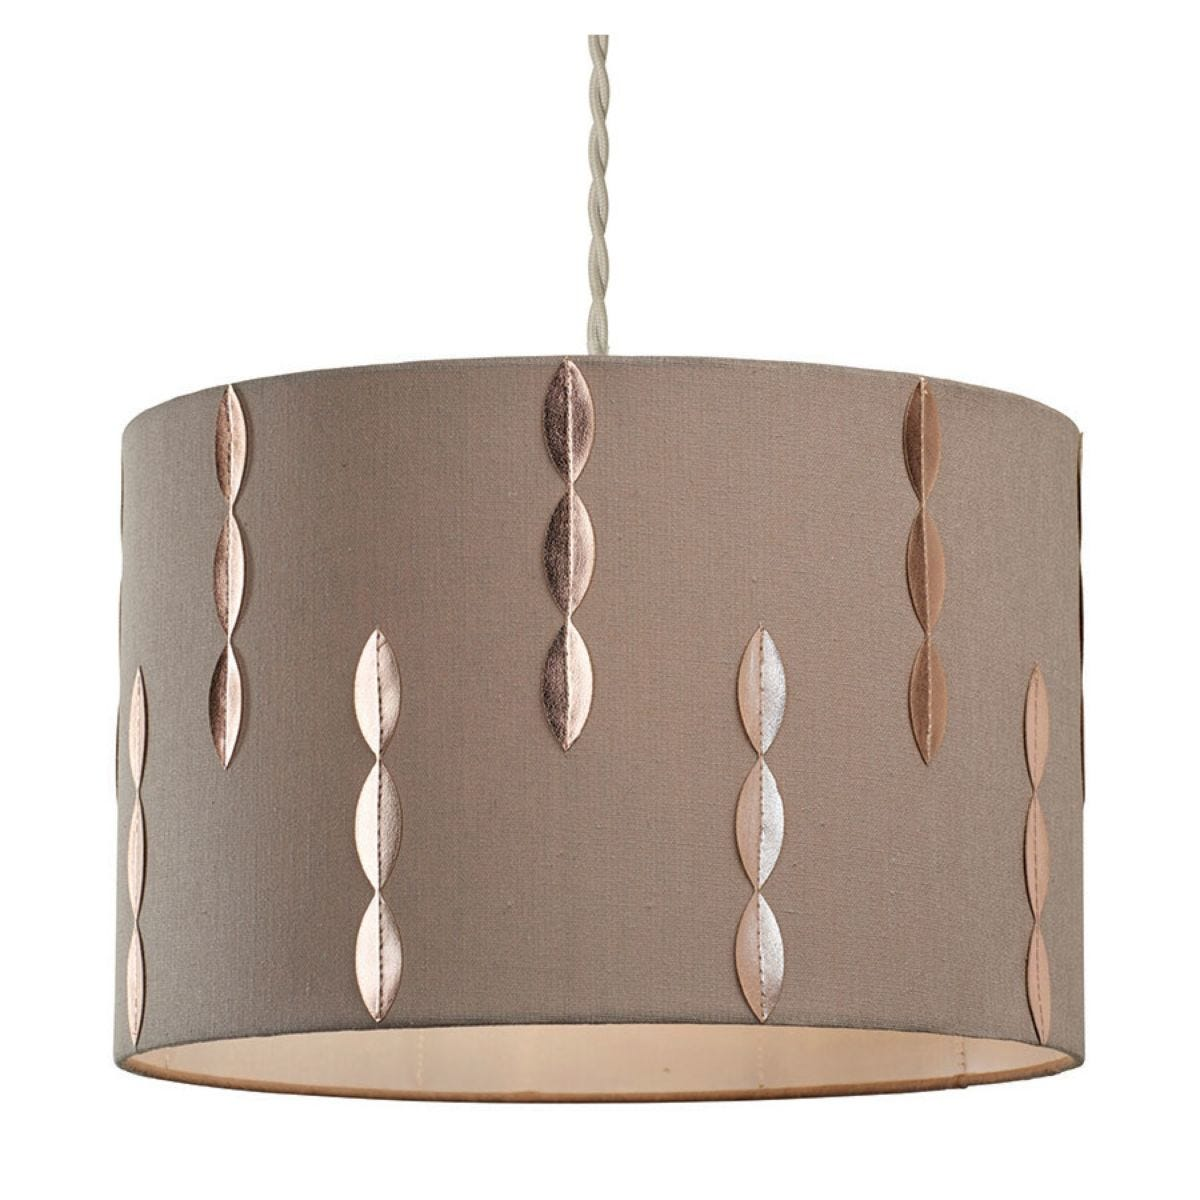 Village At Home  Louie Light Shade - Beige/Copper